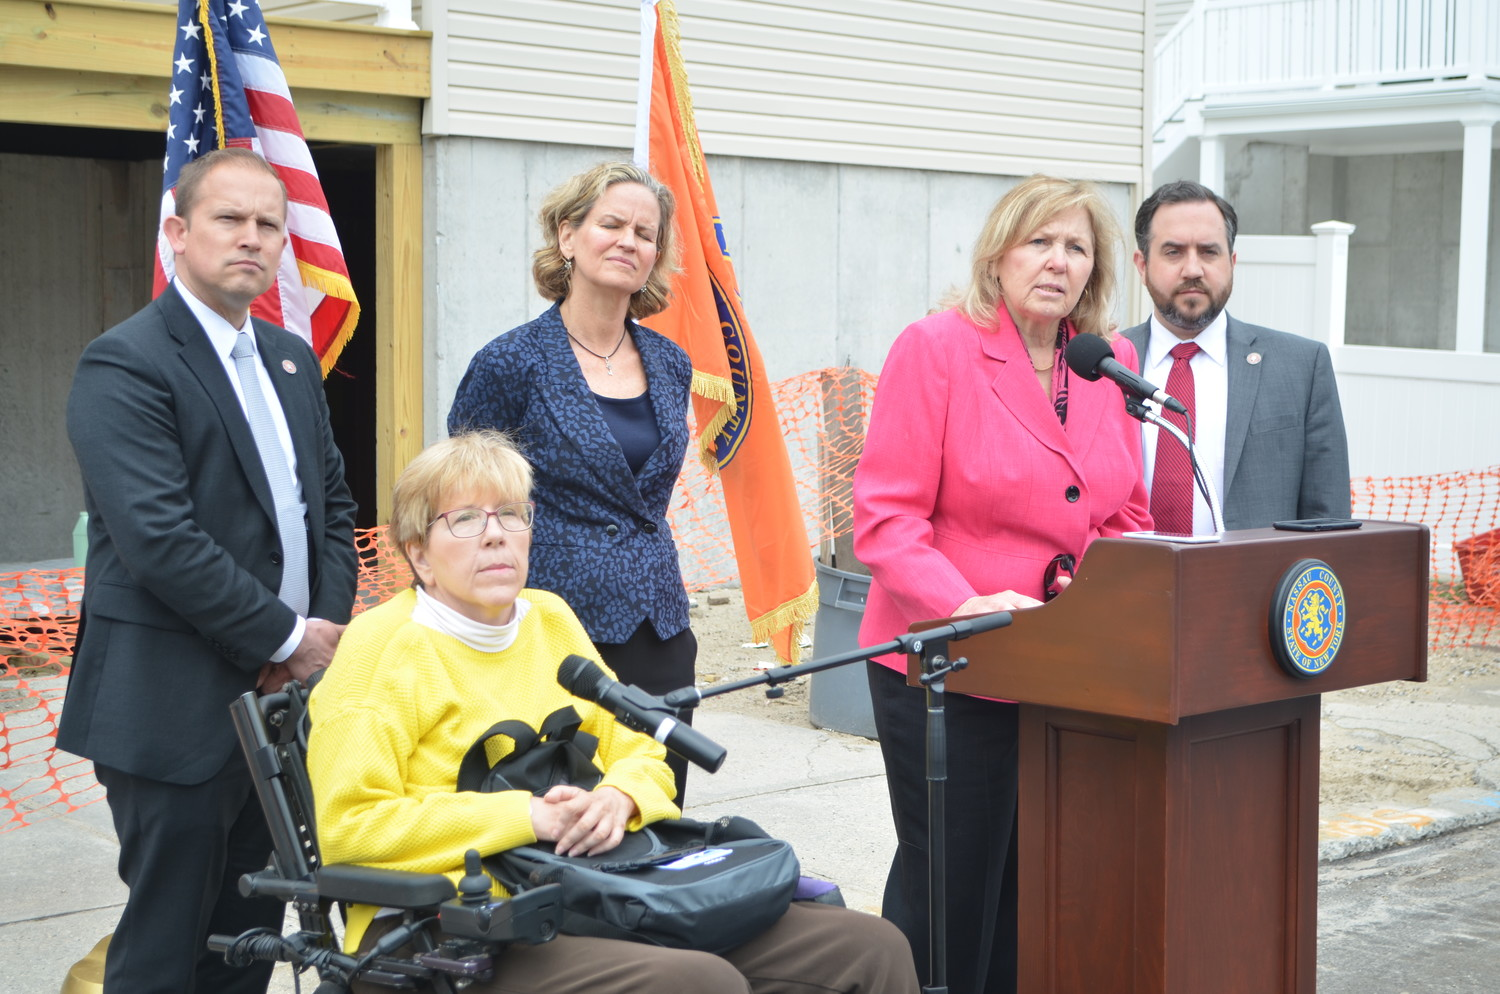 Nassau County Legislator Denise Ford, at lectern, was joined by other county officials on May 14 outside West End resident Liz Treston's Hurricane Sandy-damaged home to urge those who believe they have been victims of contractor fraud to file their cases with the county's Office of Consumer Affairs.